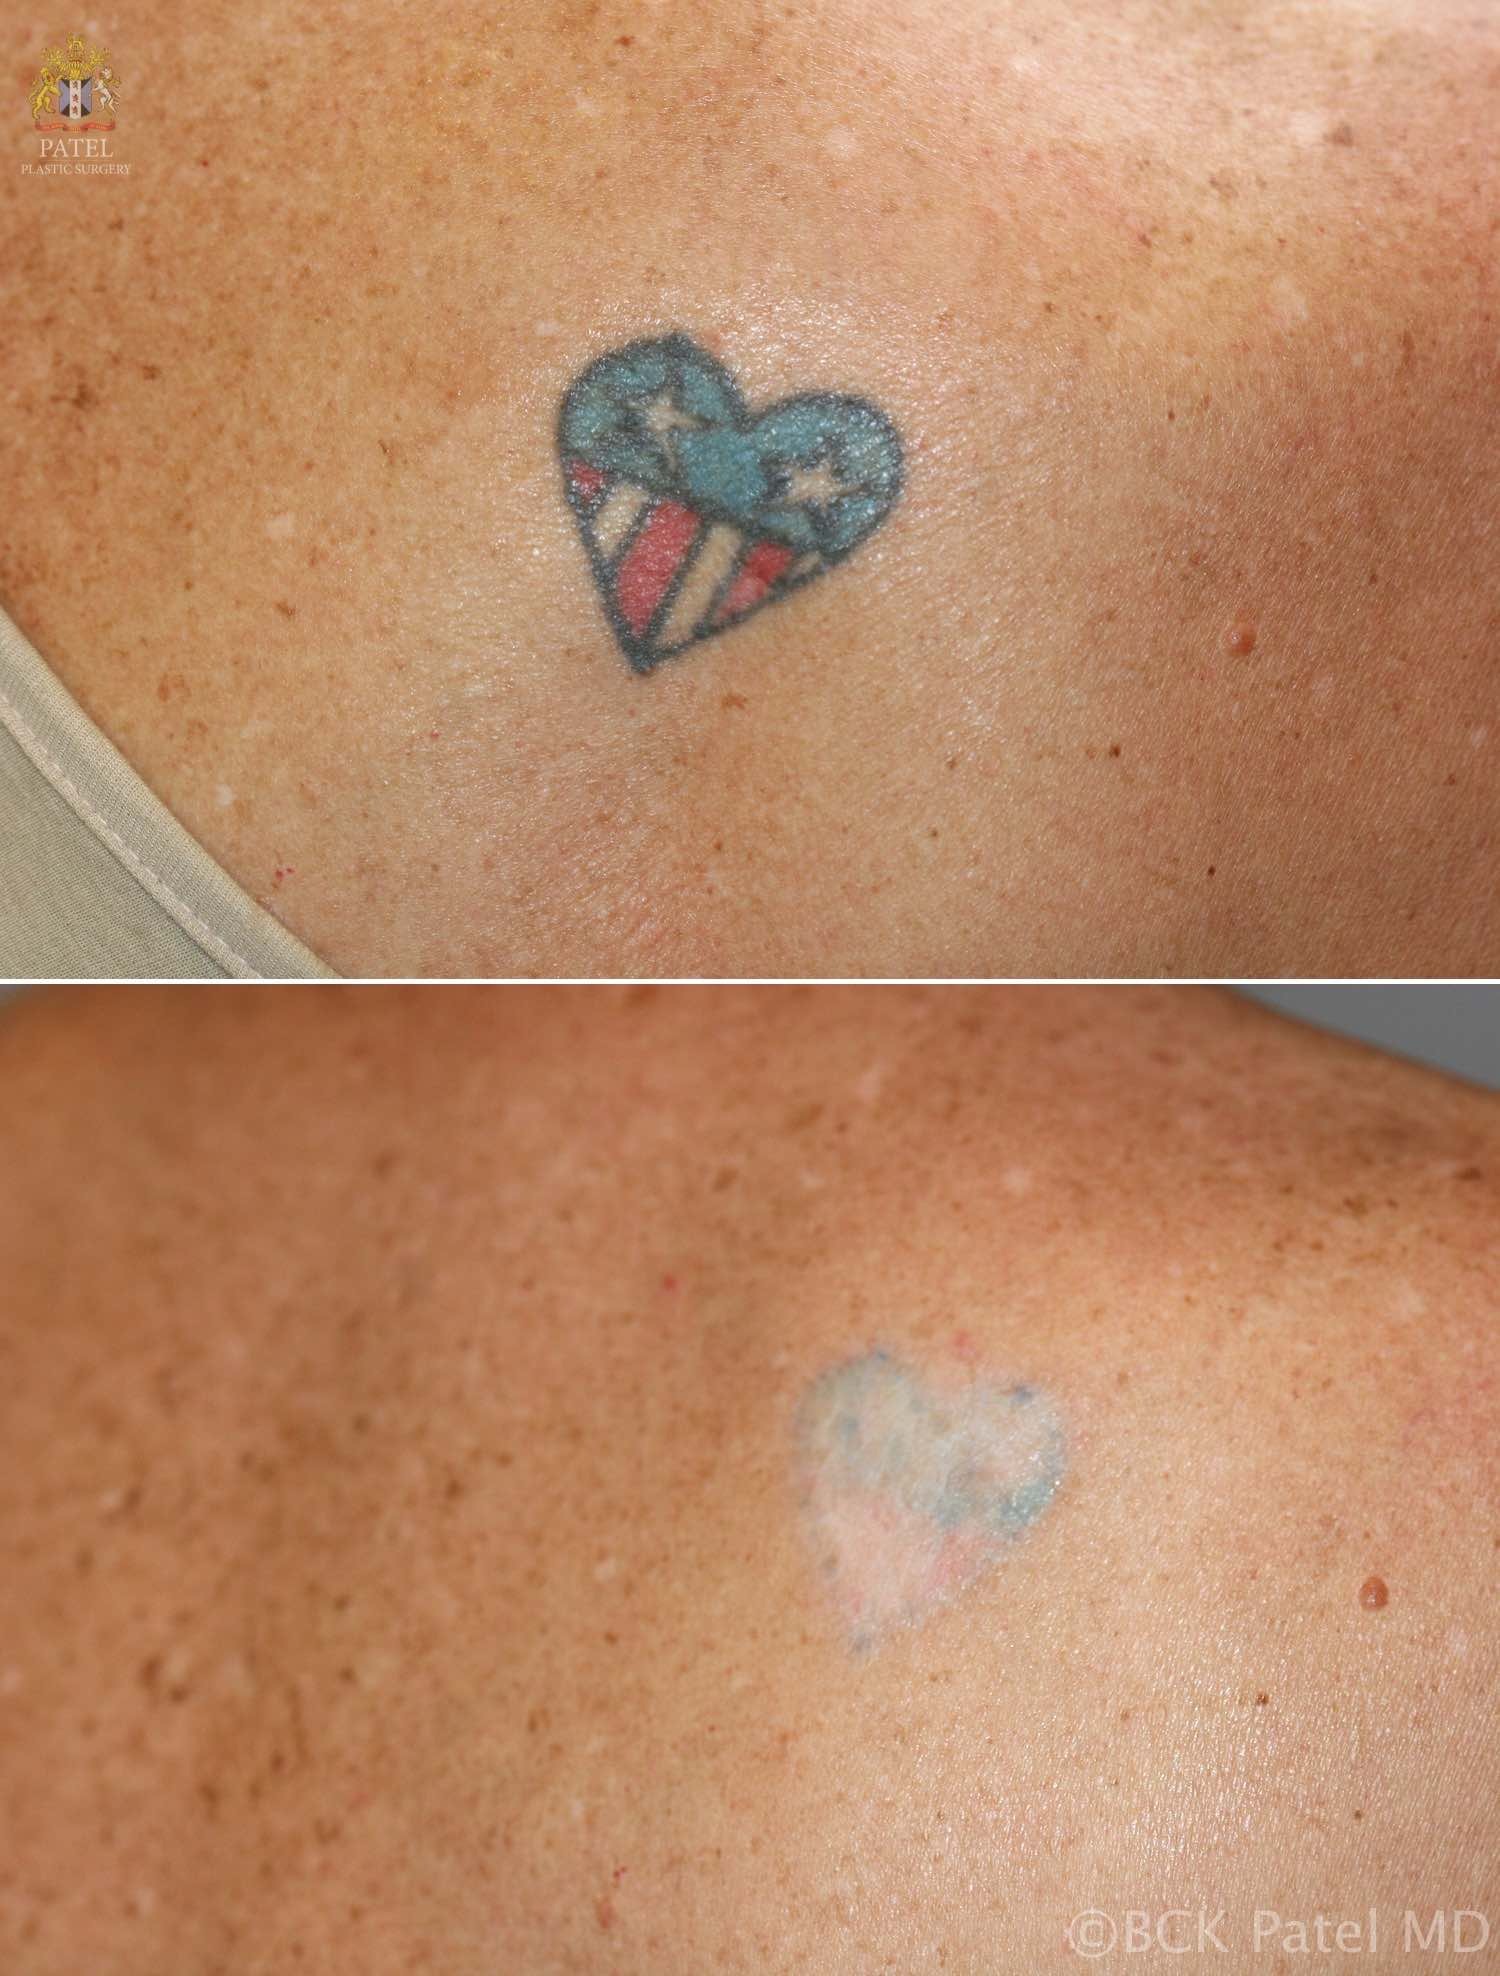 efficient removal of unwanted tattoos using advanced lasers